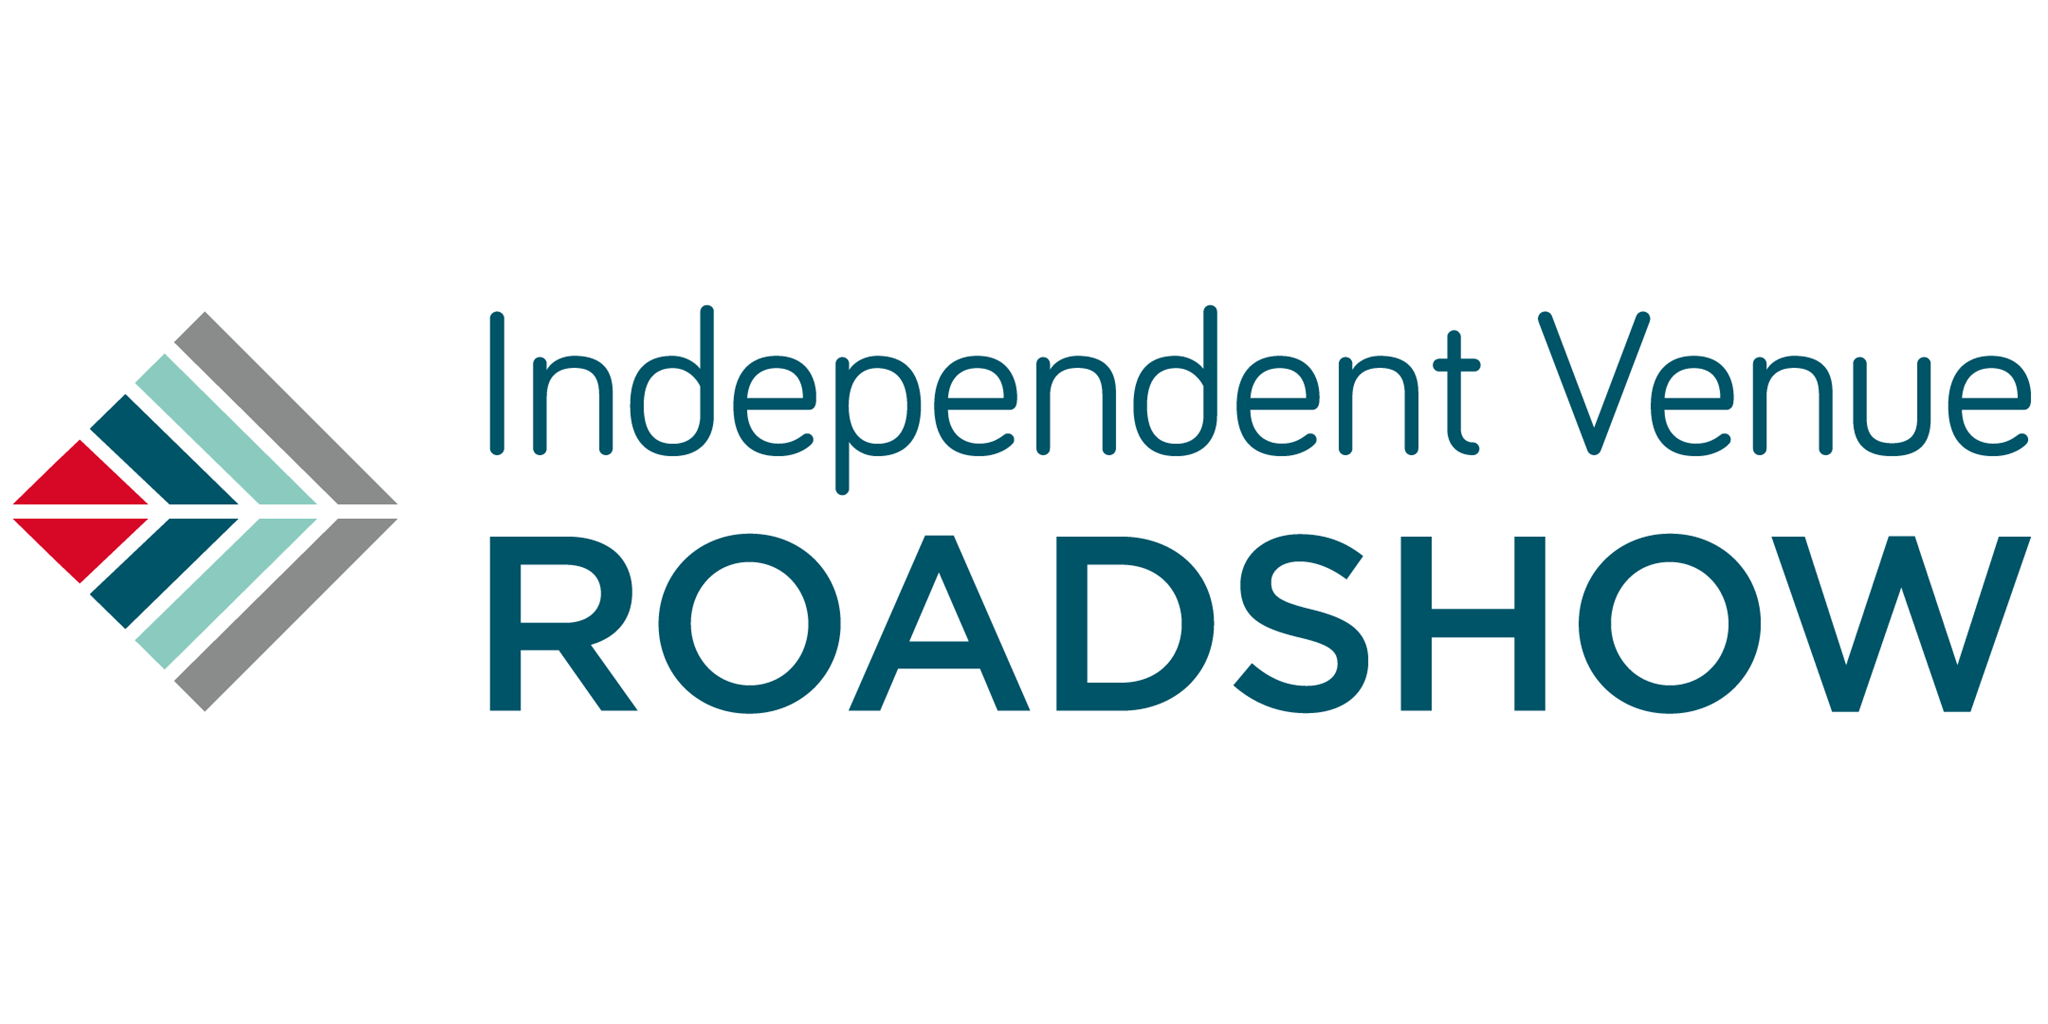 Independent Venue Roadshow January 2019 - Coventry